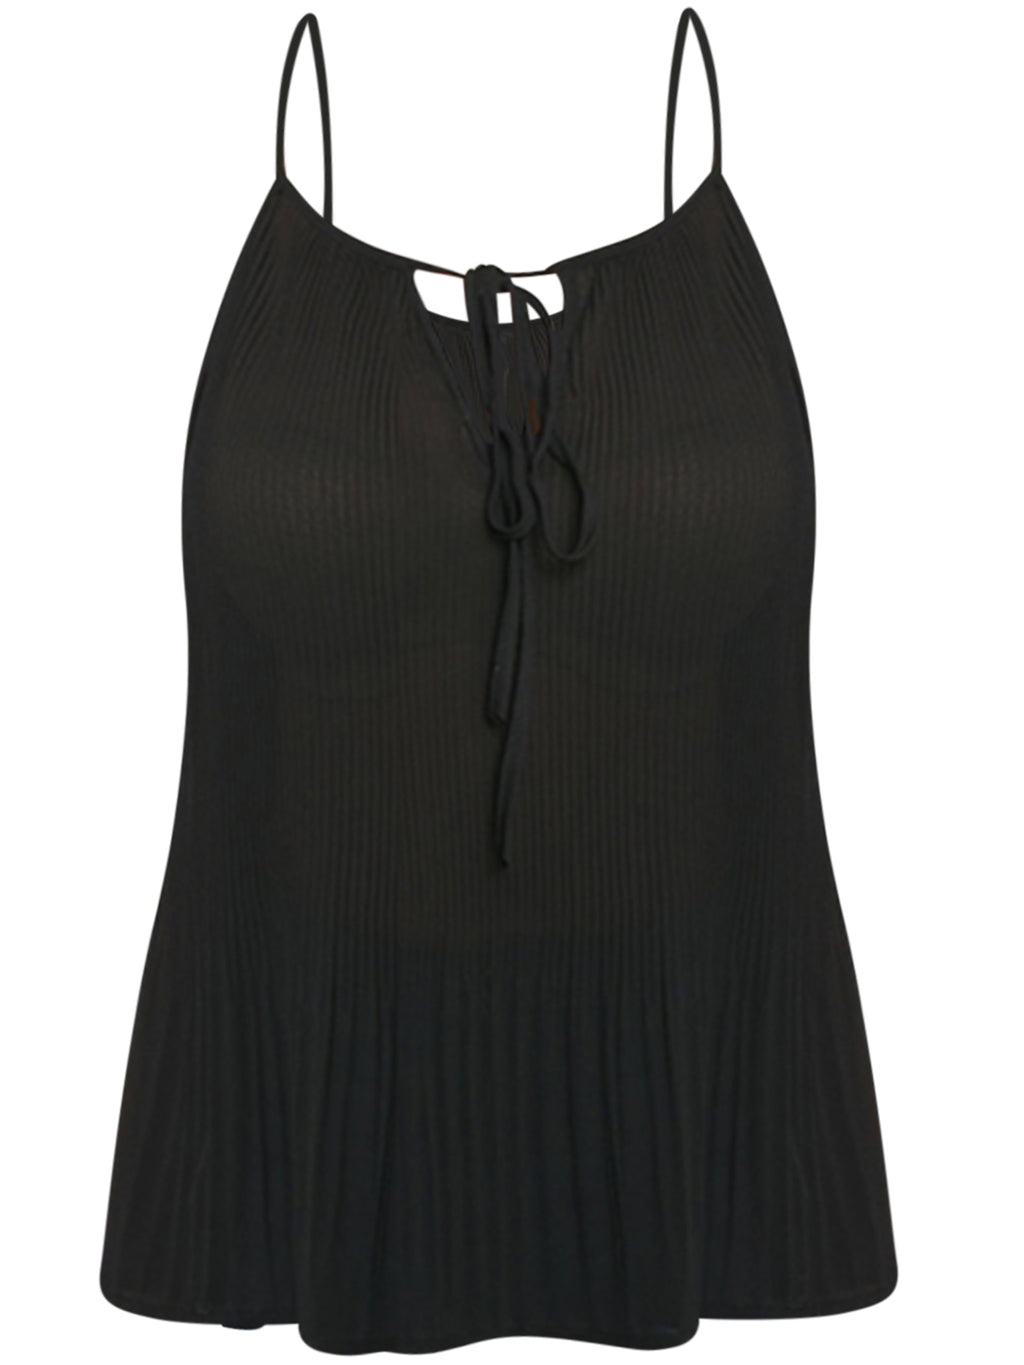 Black Plus Size Tank Top